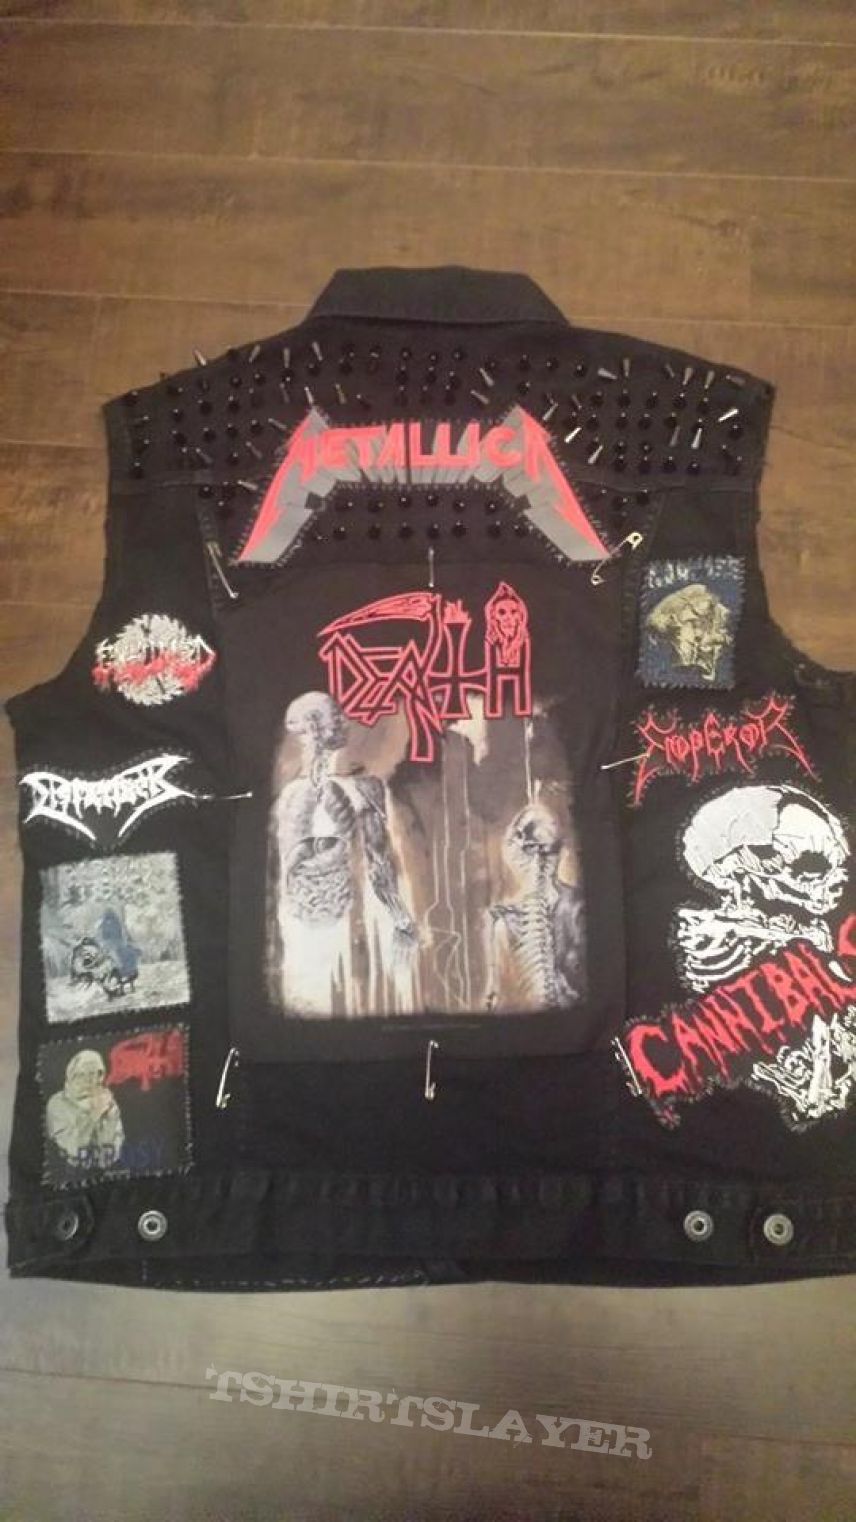 Black vest, Signed By Cannibal Corpse and Behemoth